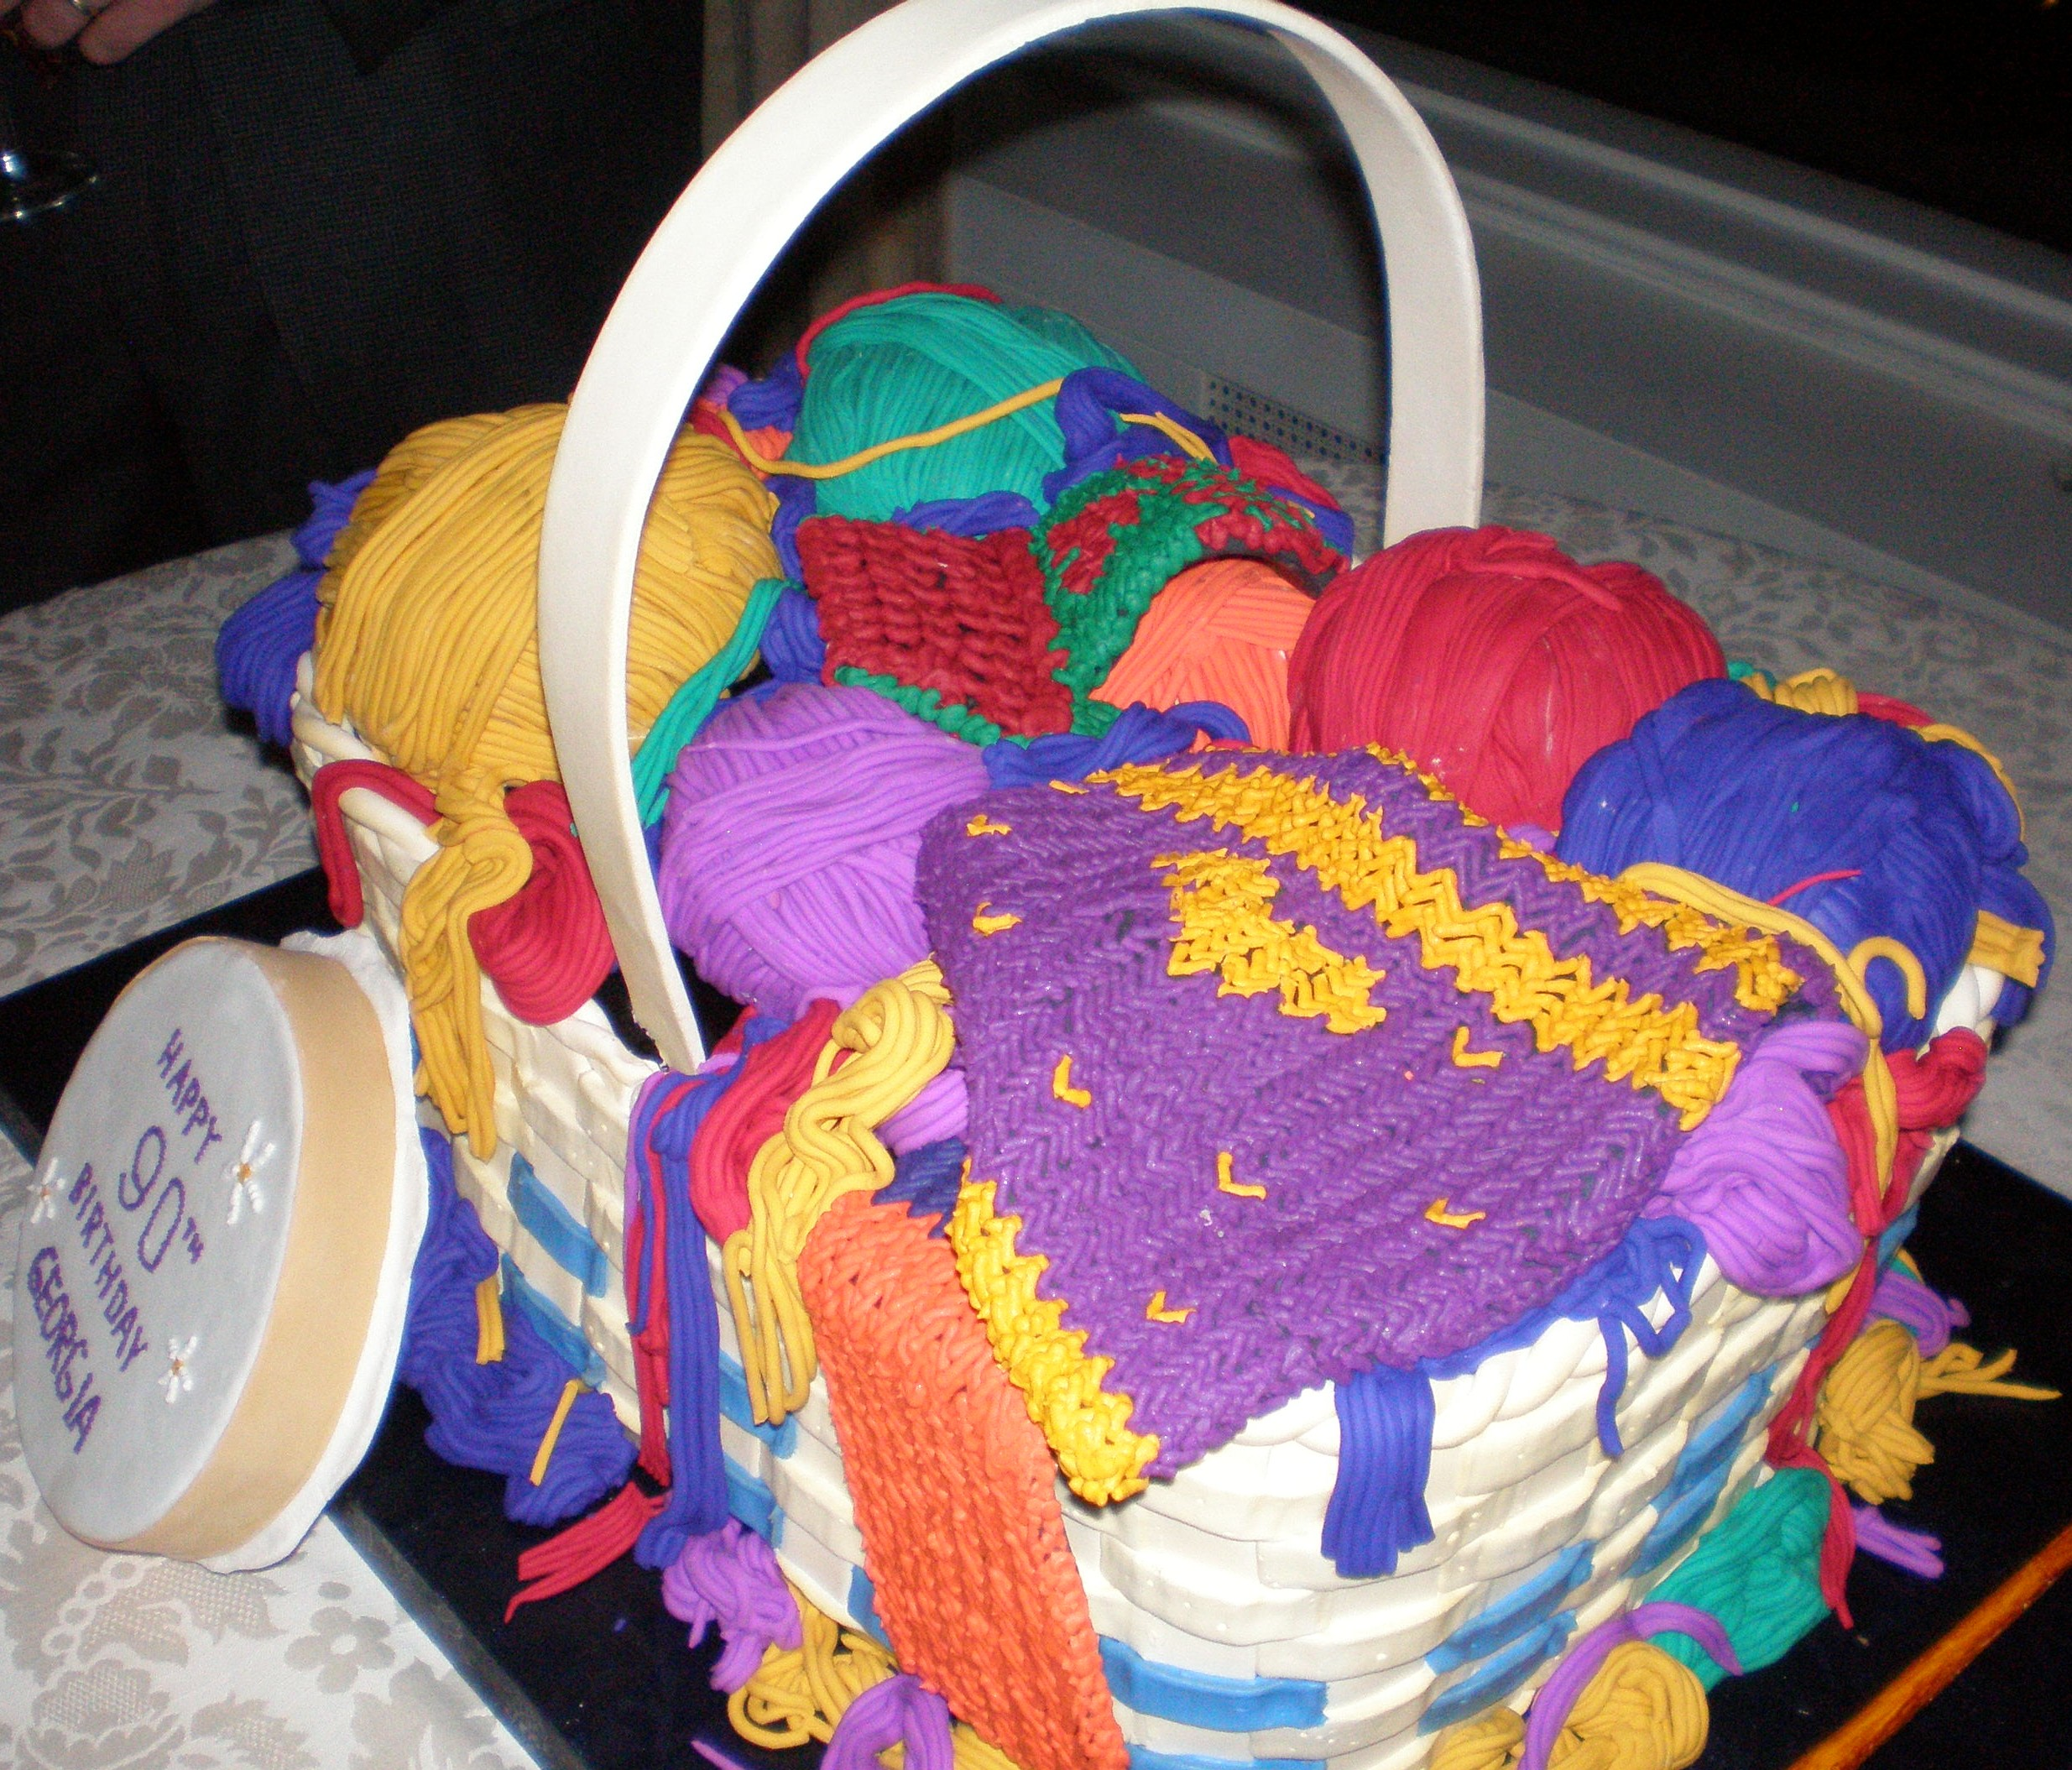 Cake Full Of Yarn